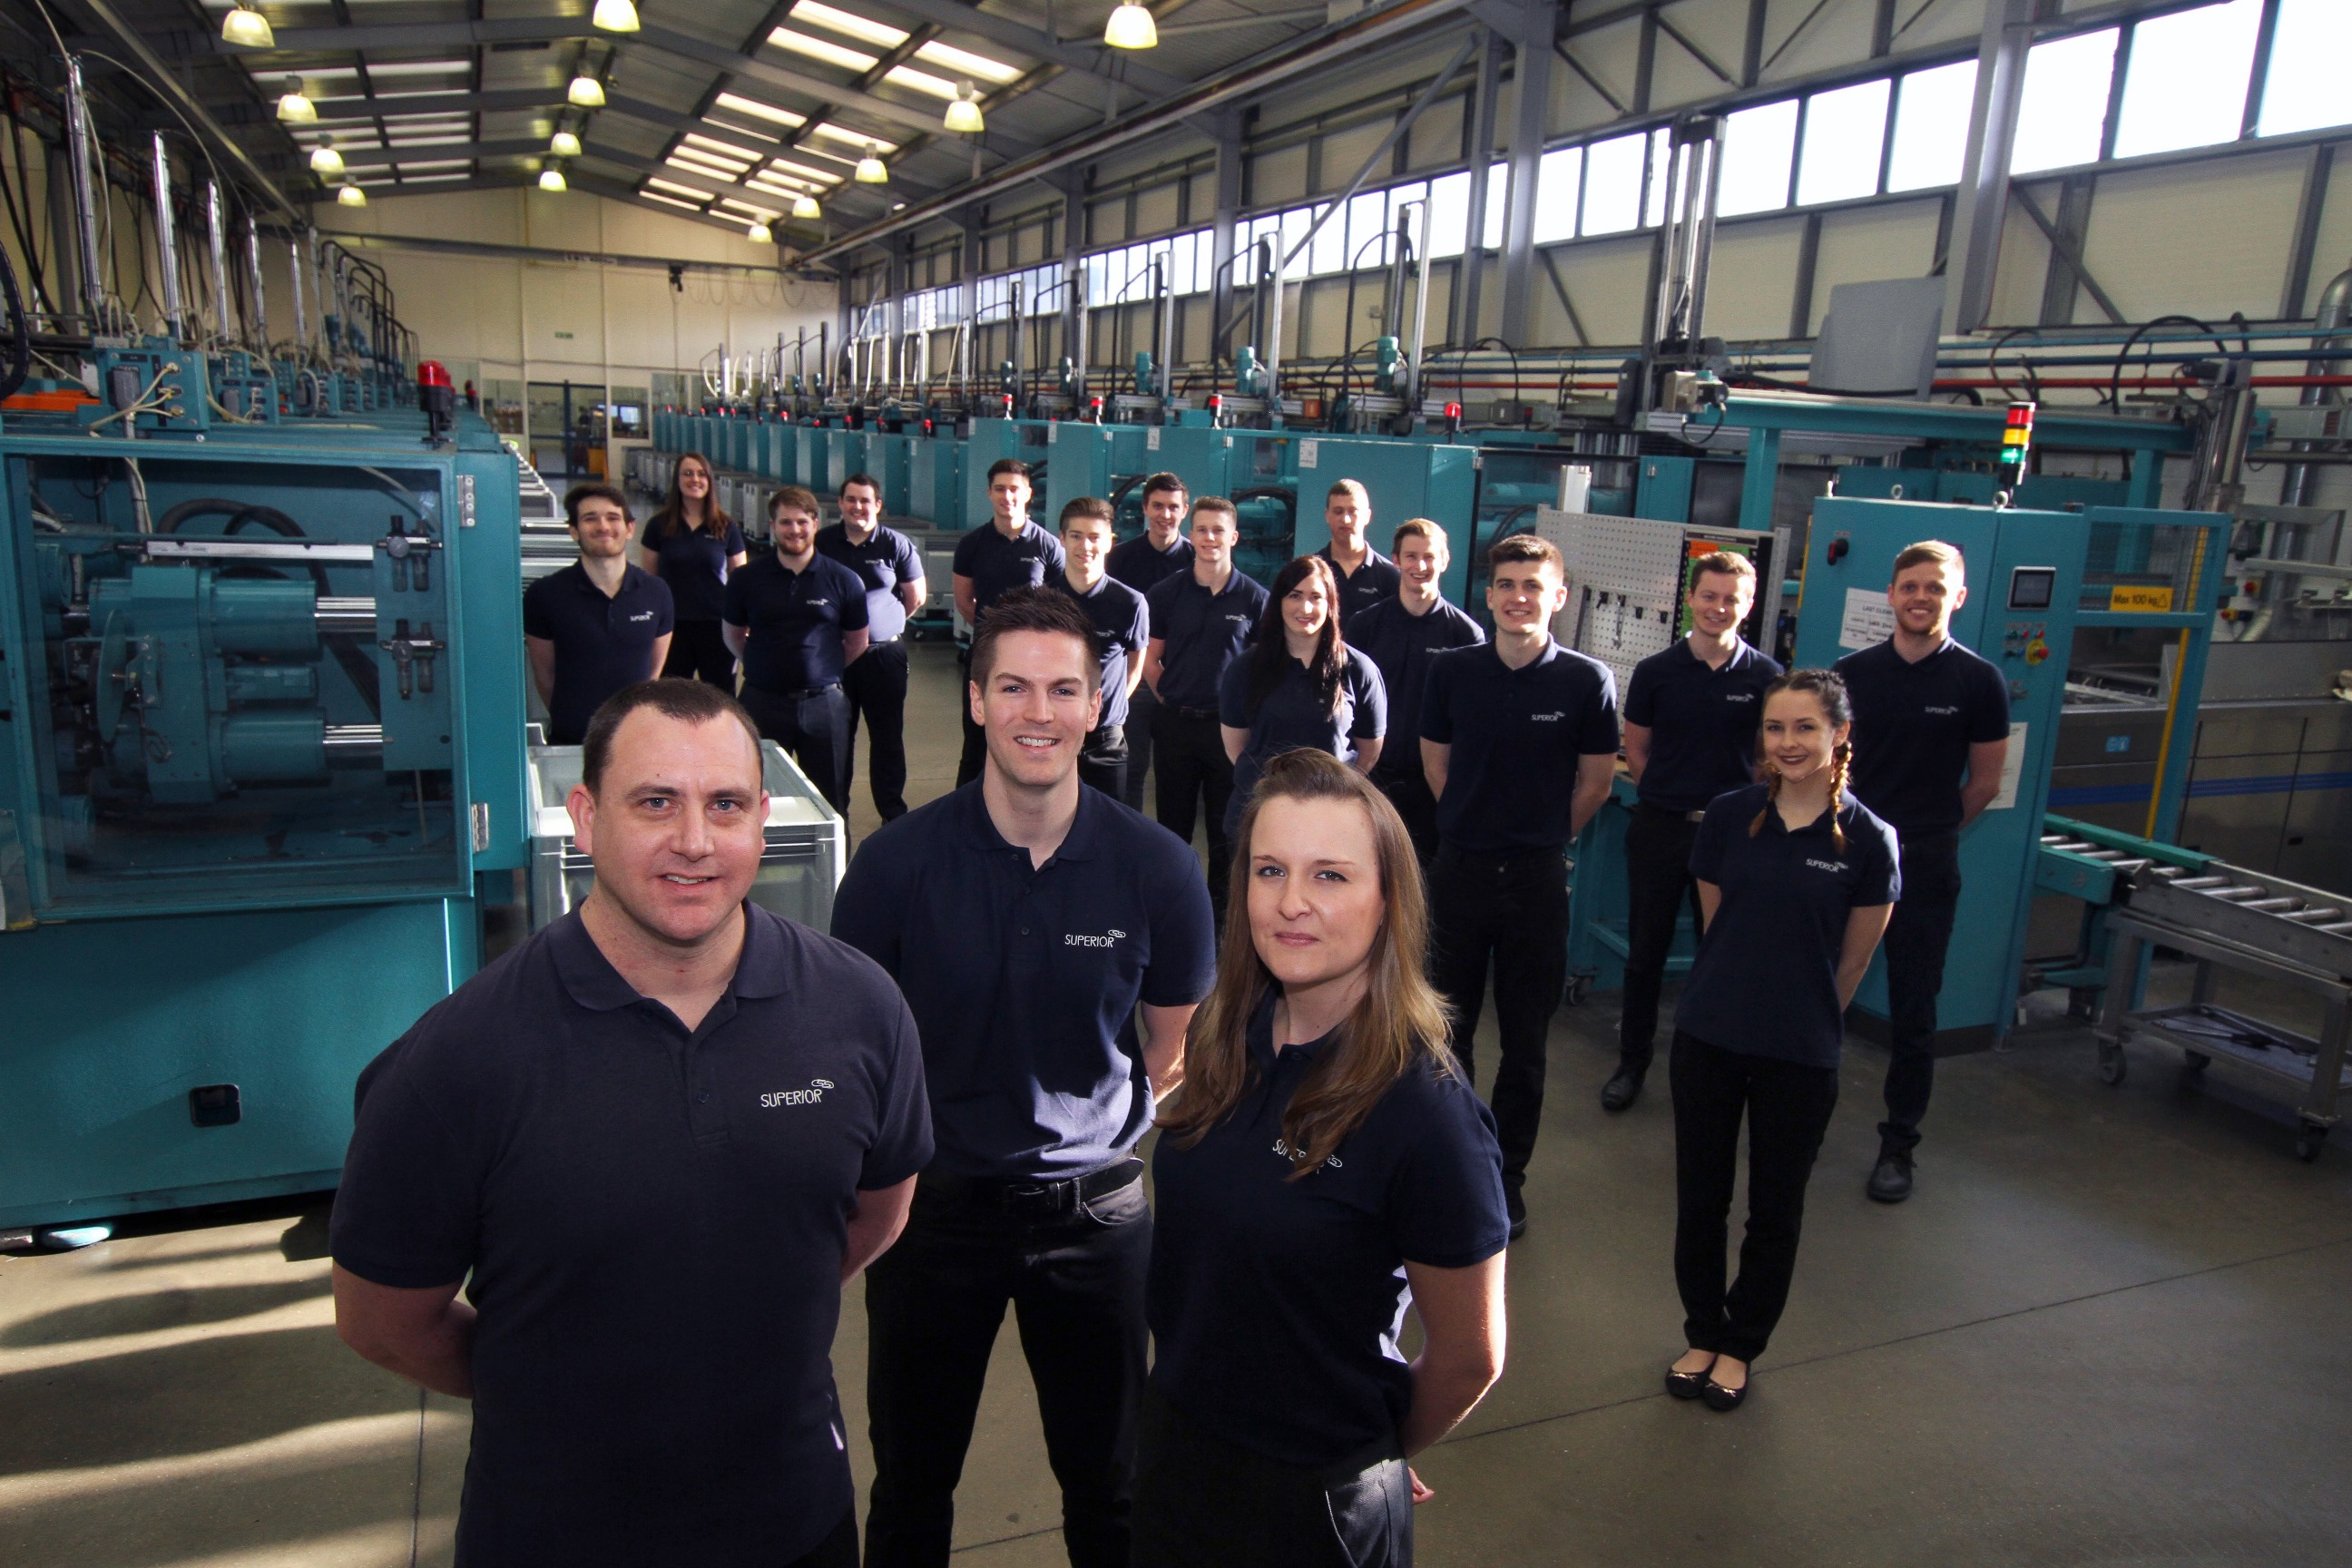 From left to right, Liam Stratten, training manager, Ben Clarke, quality manager and Katie Bodman, head of training academy with Superior apprentices